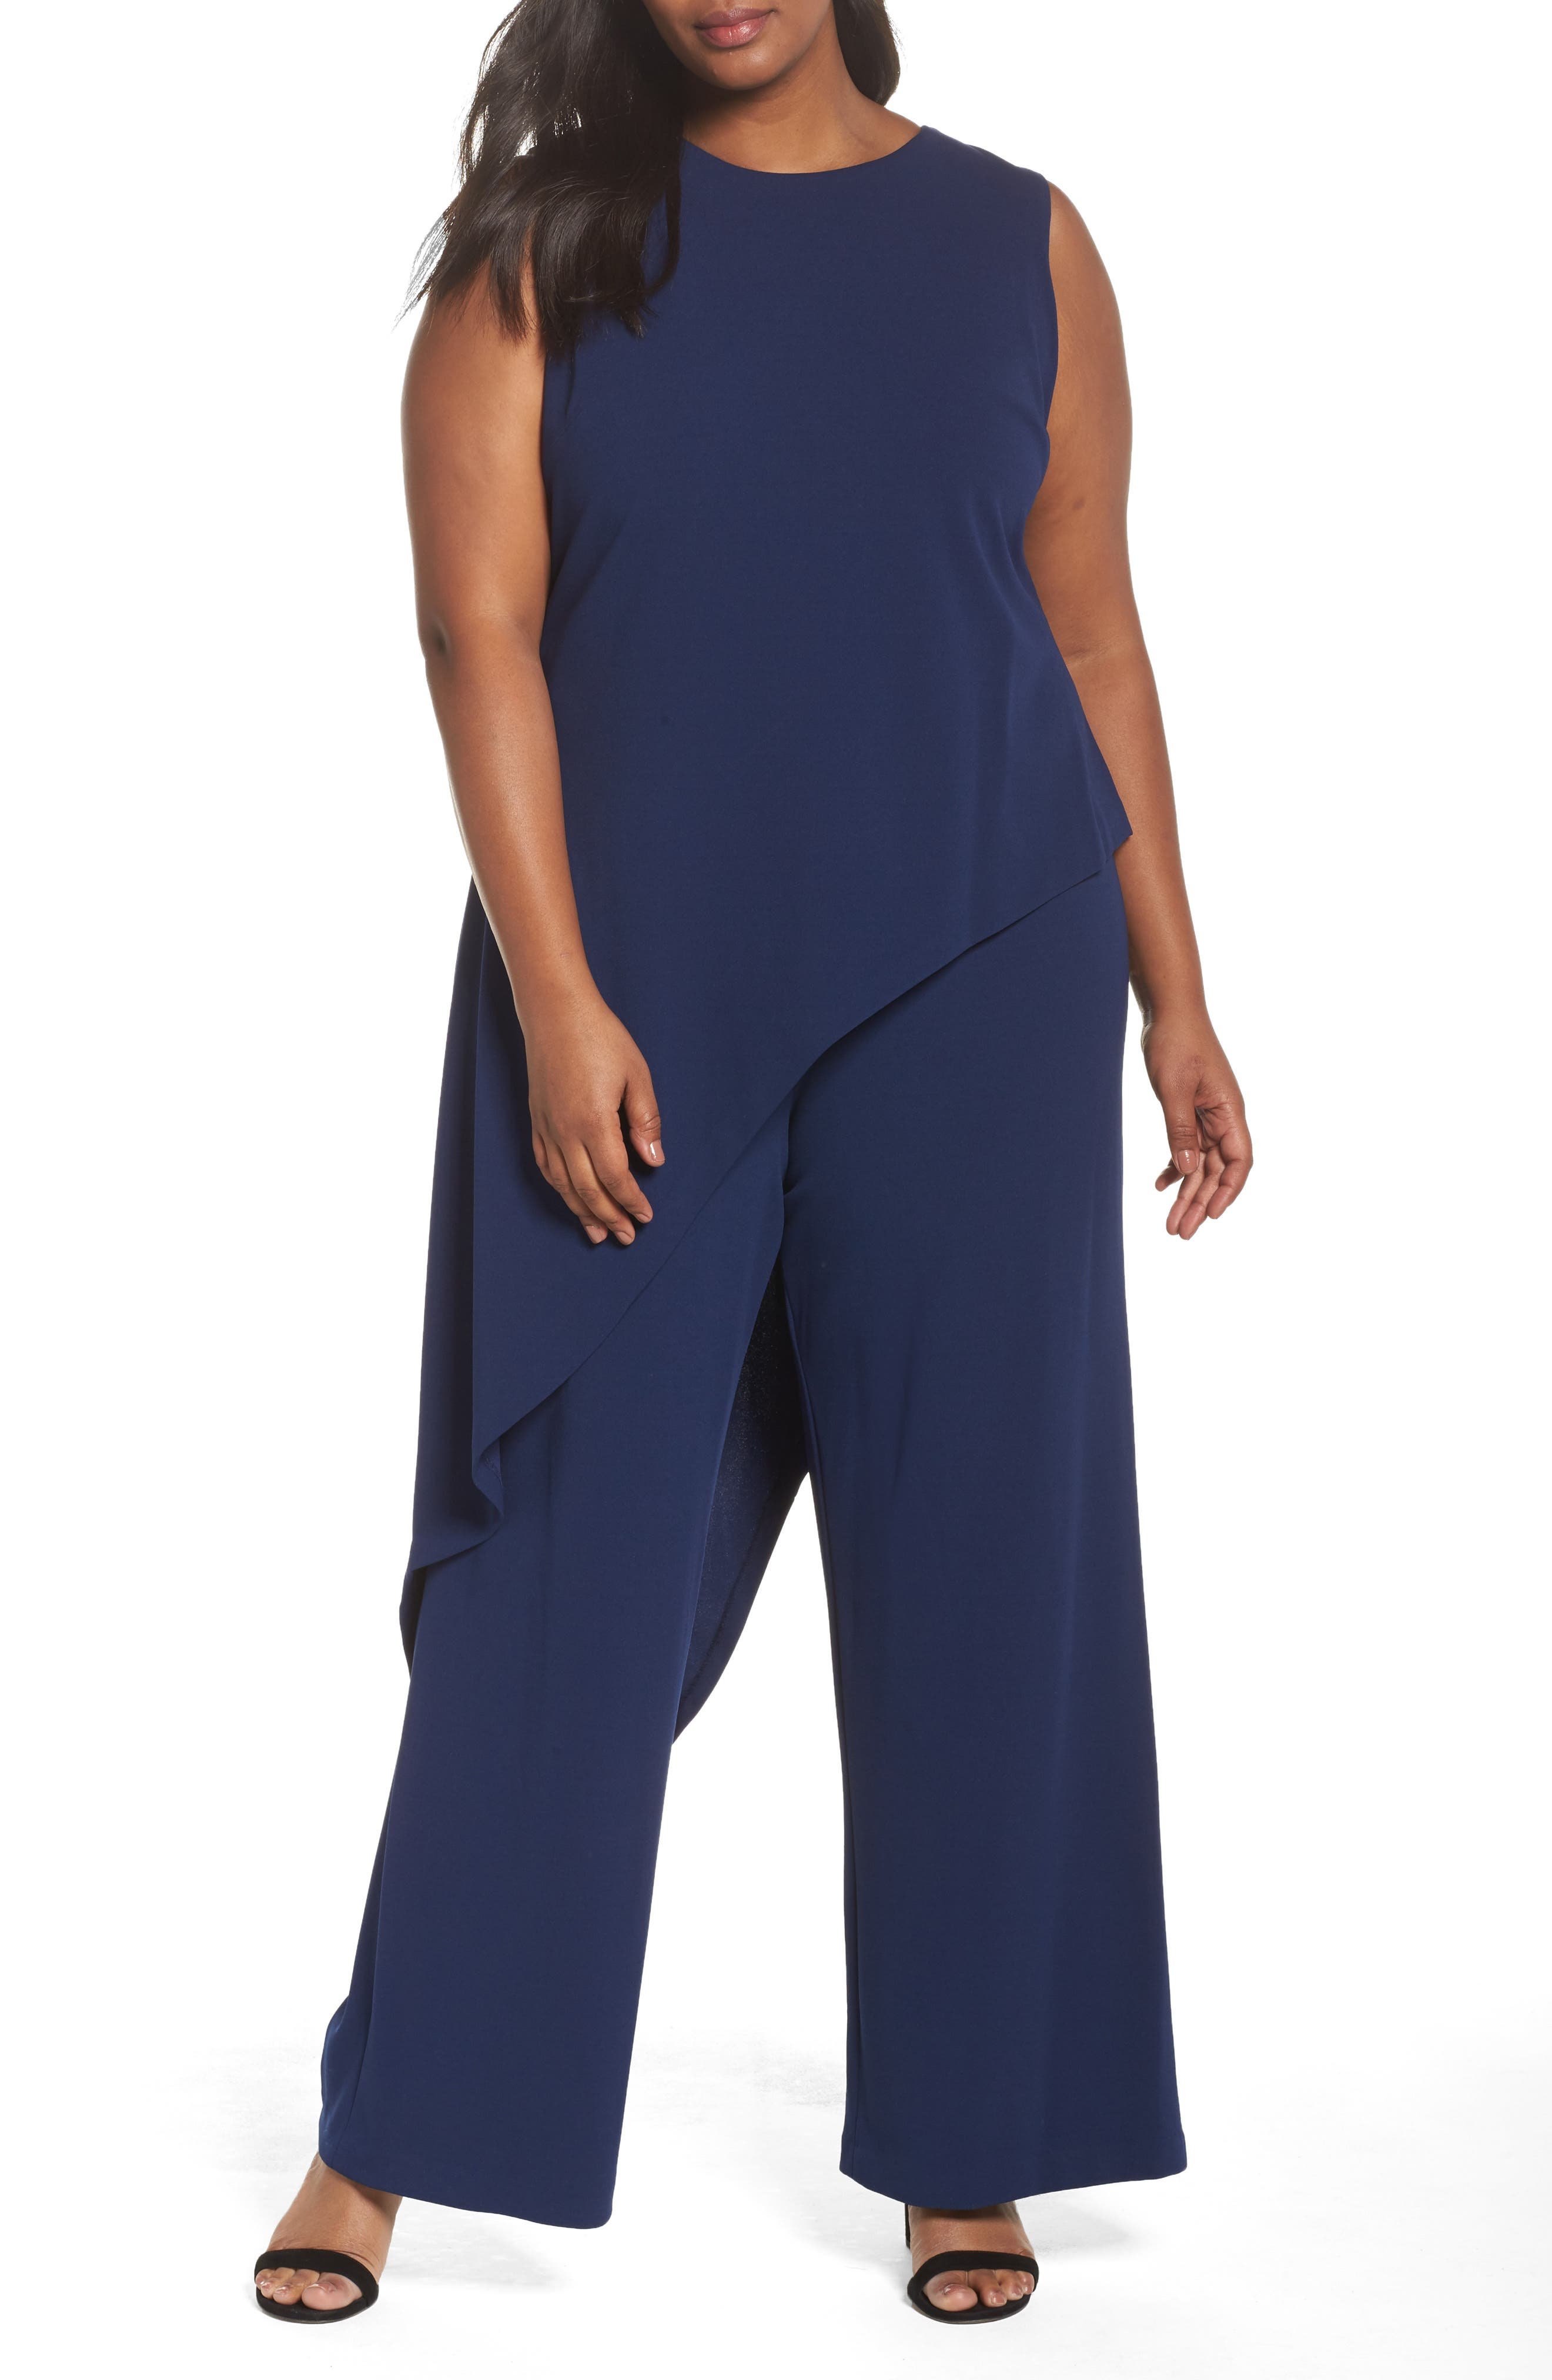 Adrianna Papell Knit Crepe Asymmetrical Jumpsuit (Plus Size)